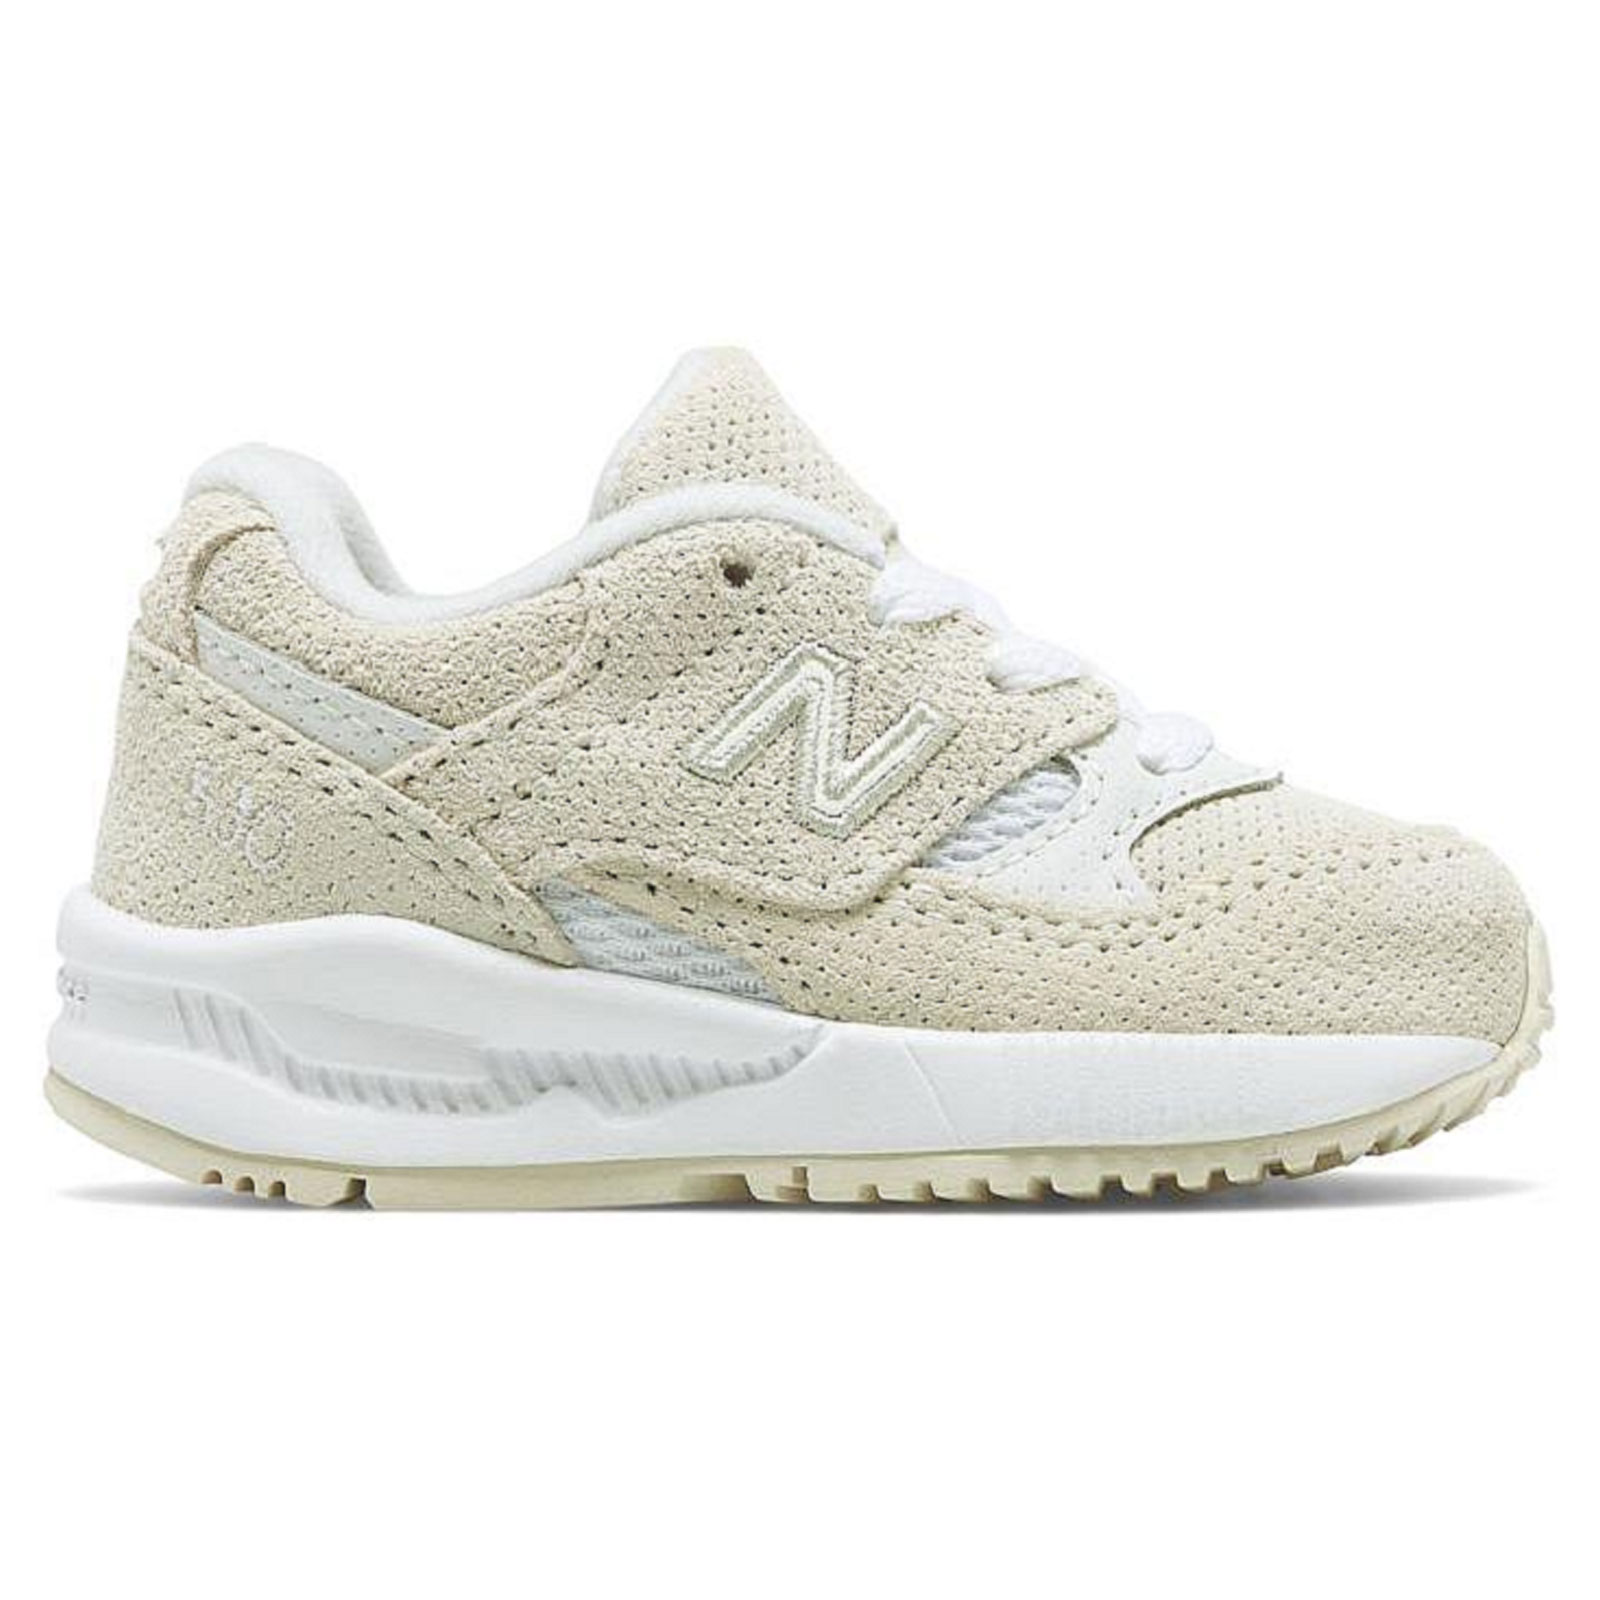 9a4fe97928 Details about New Balance 530 Baby Children Kids Sneaker Shoes Trainers  beige KL530TWI SALE